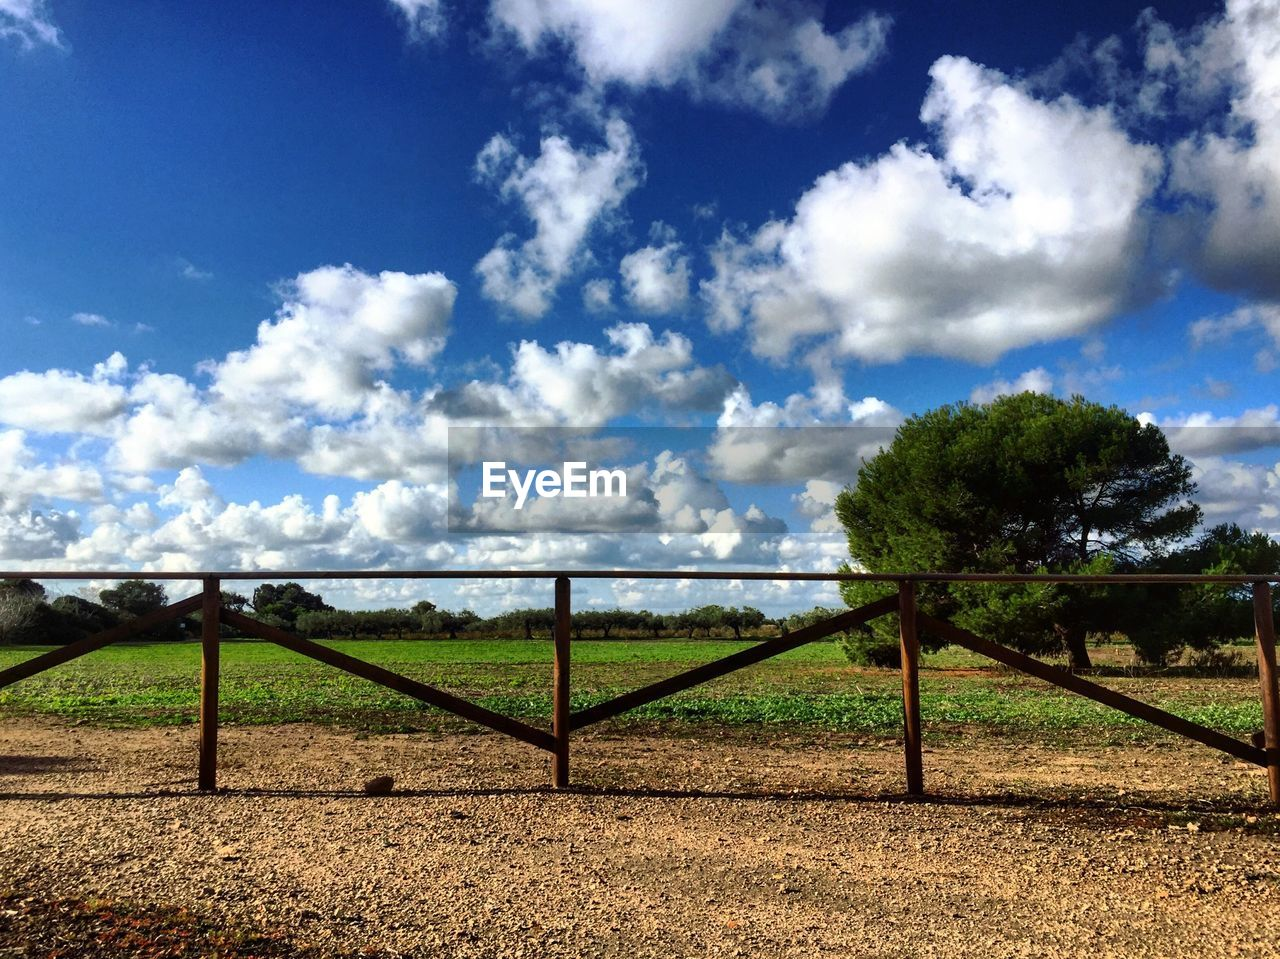 cloud - sky, sky, plant, tranquil scene, field, landscape, nature, boundary, barrier, tree, fence, land, tranquility, scenics - nature, beauty in nature, environment, day, no people, agriculture, grass, outdoors